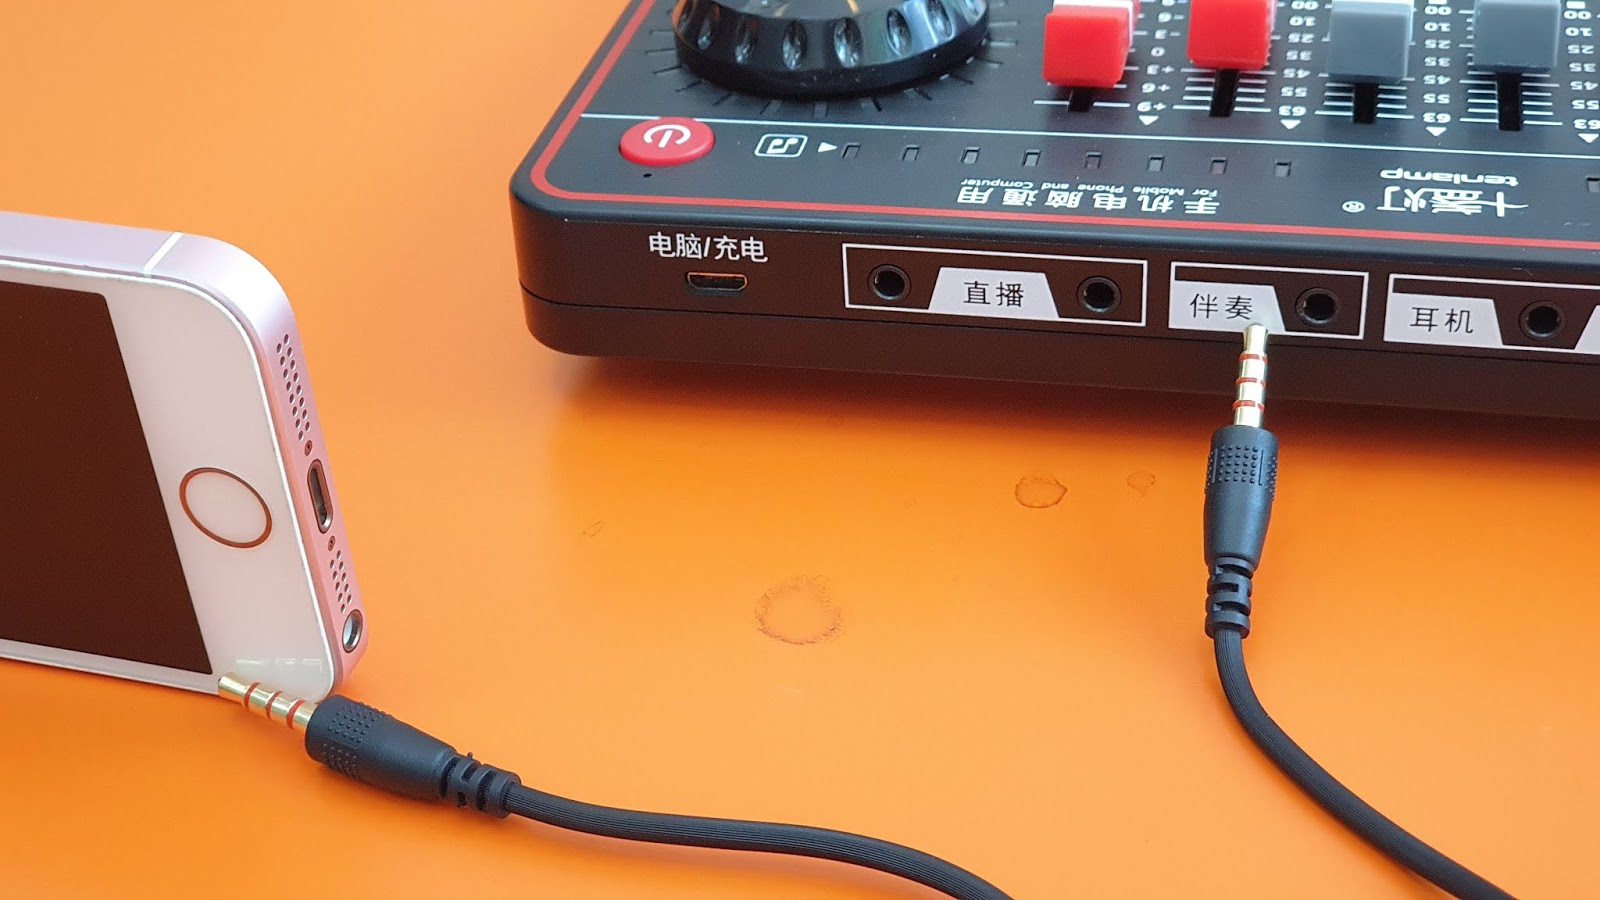 USB audio sound card with PC OBS and iPhone for live st